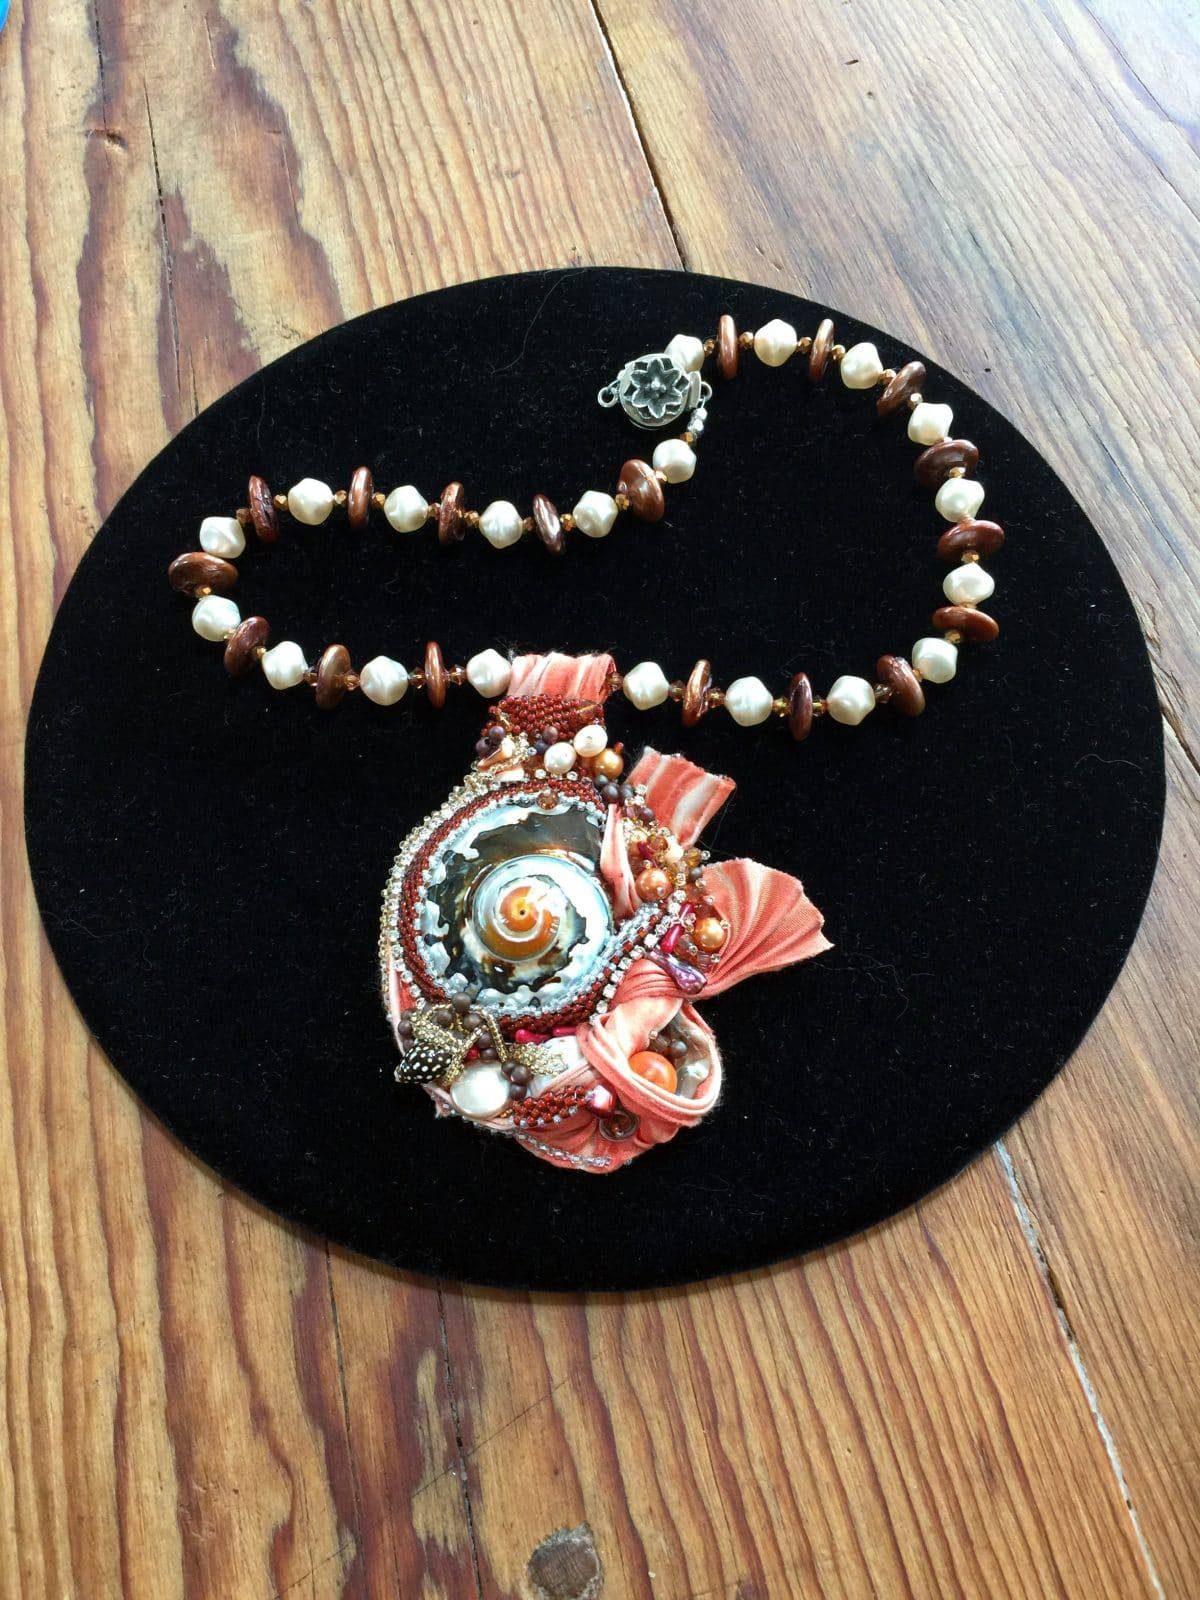 This nautilus beadweaving necklace called Beauty of the Sea at Sunrise is by Mary Ellen Beads, Albuquerque.